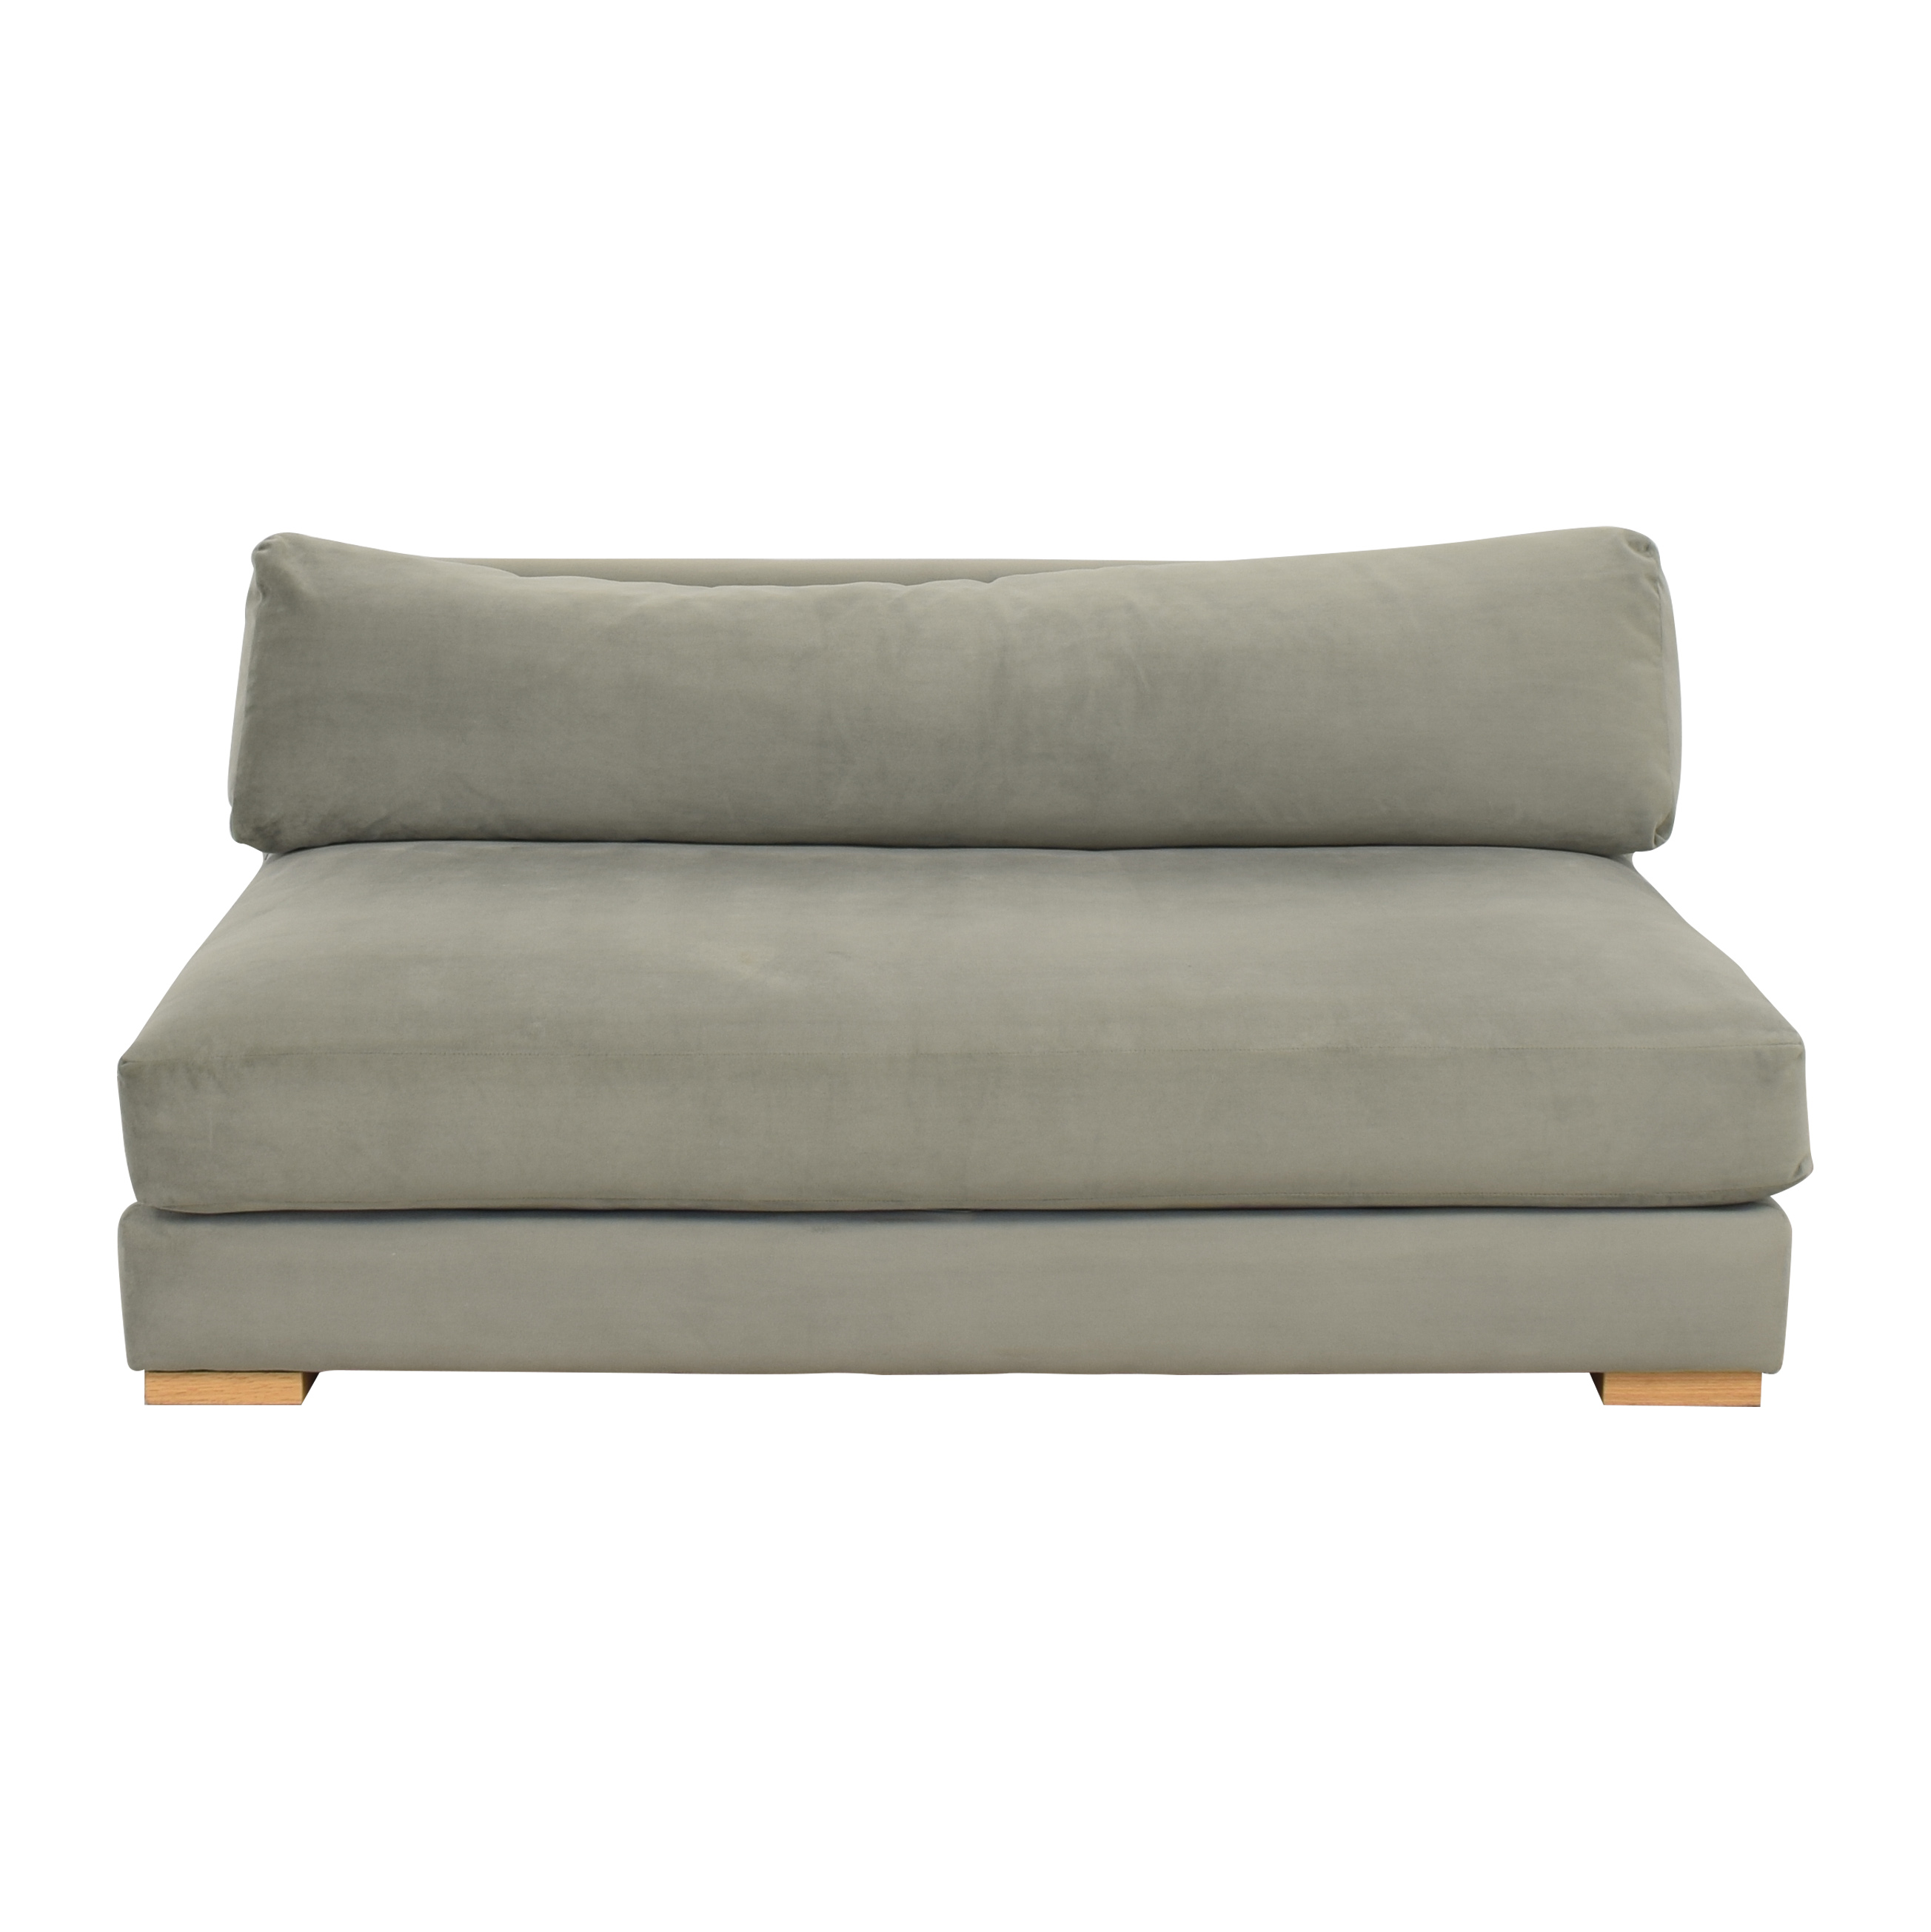 CB2 CB2 Piazza Apartment Sofa dimensions